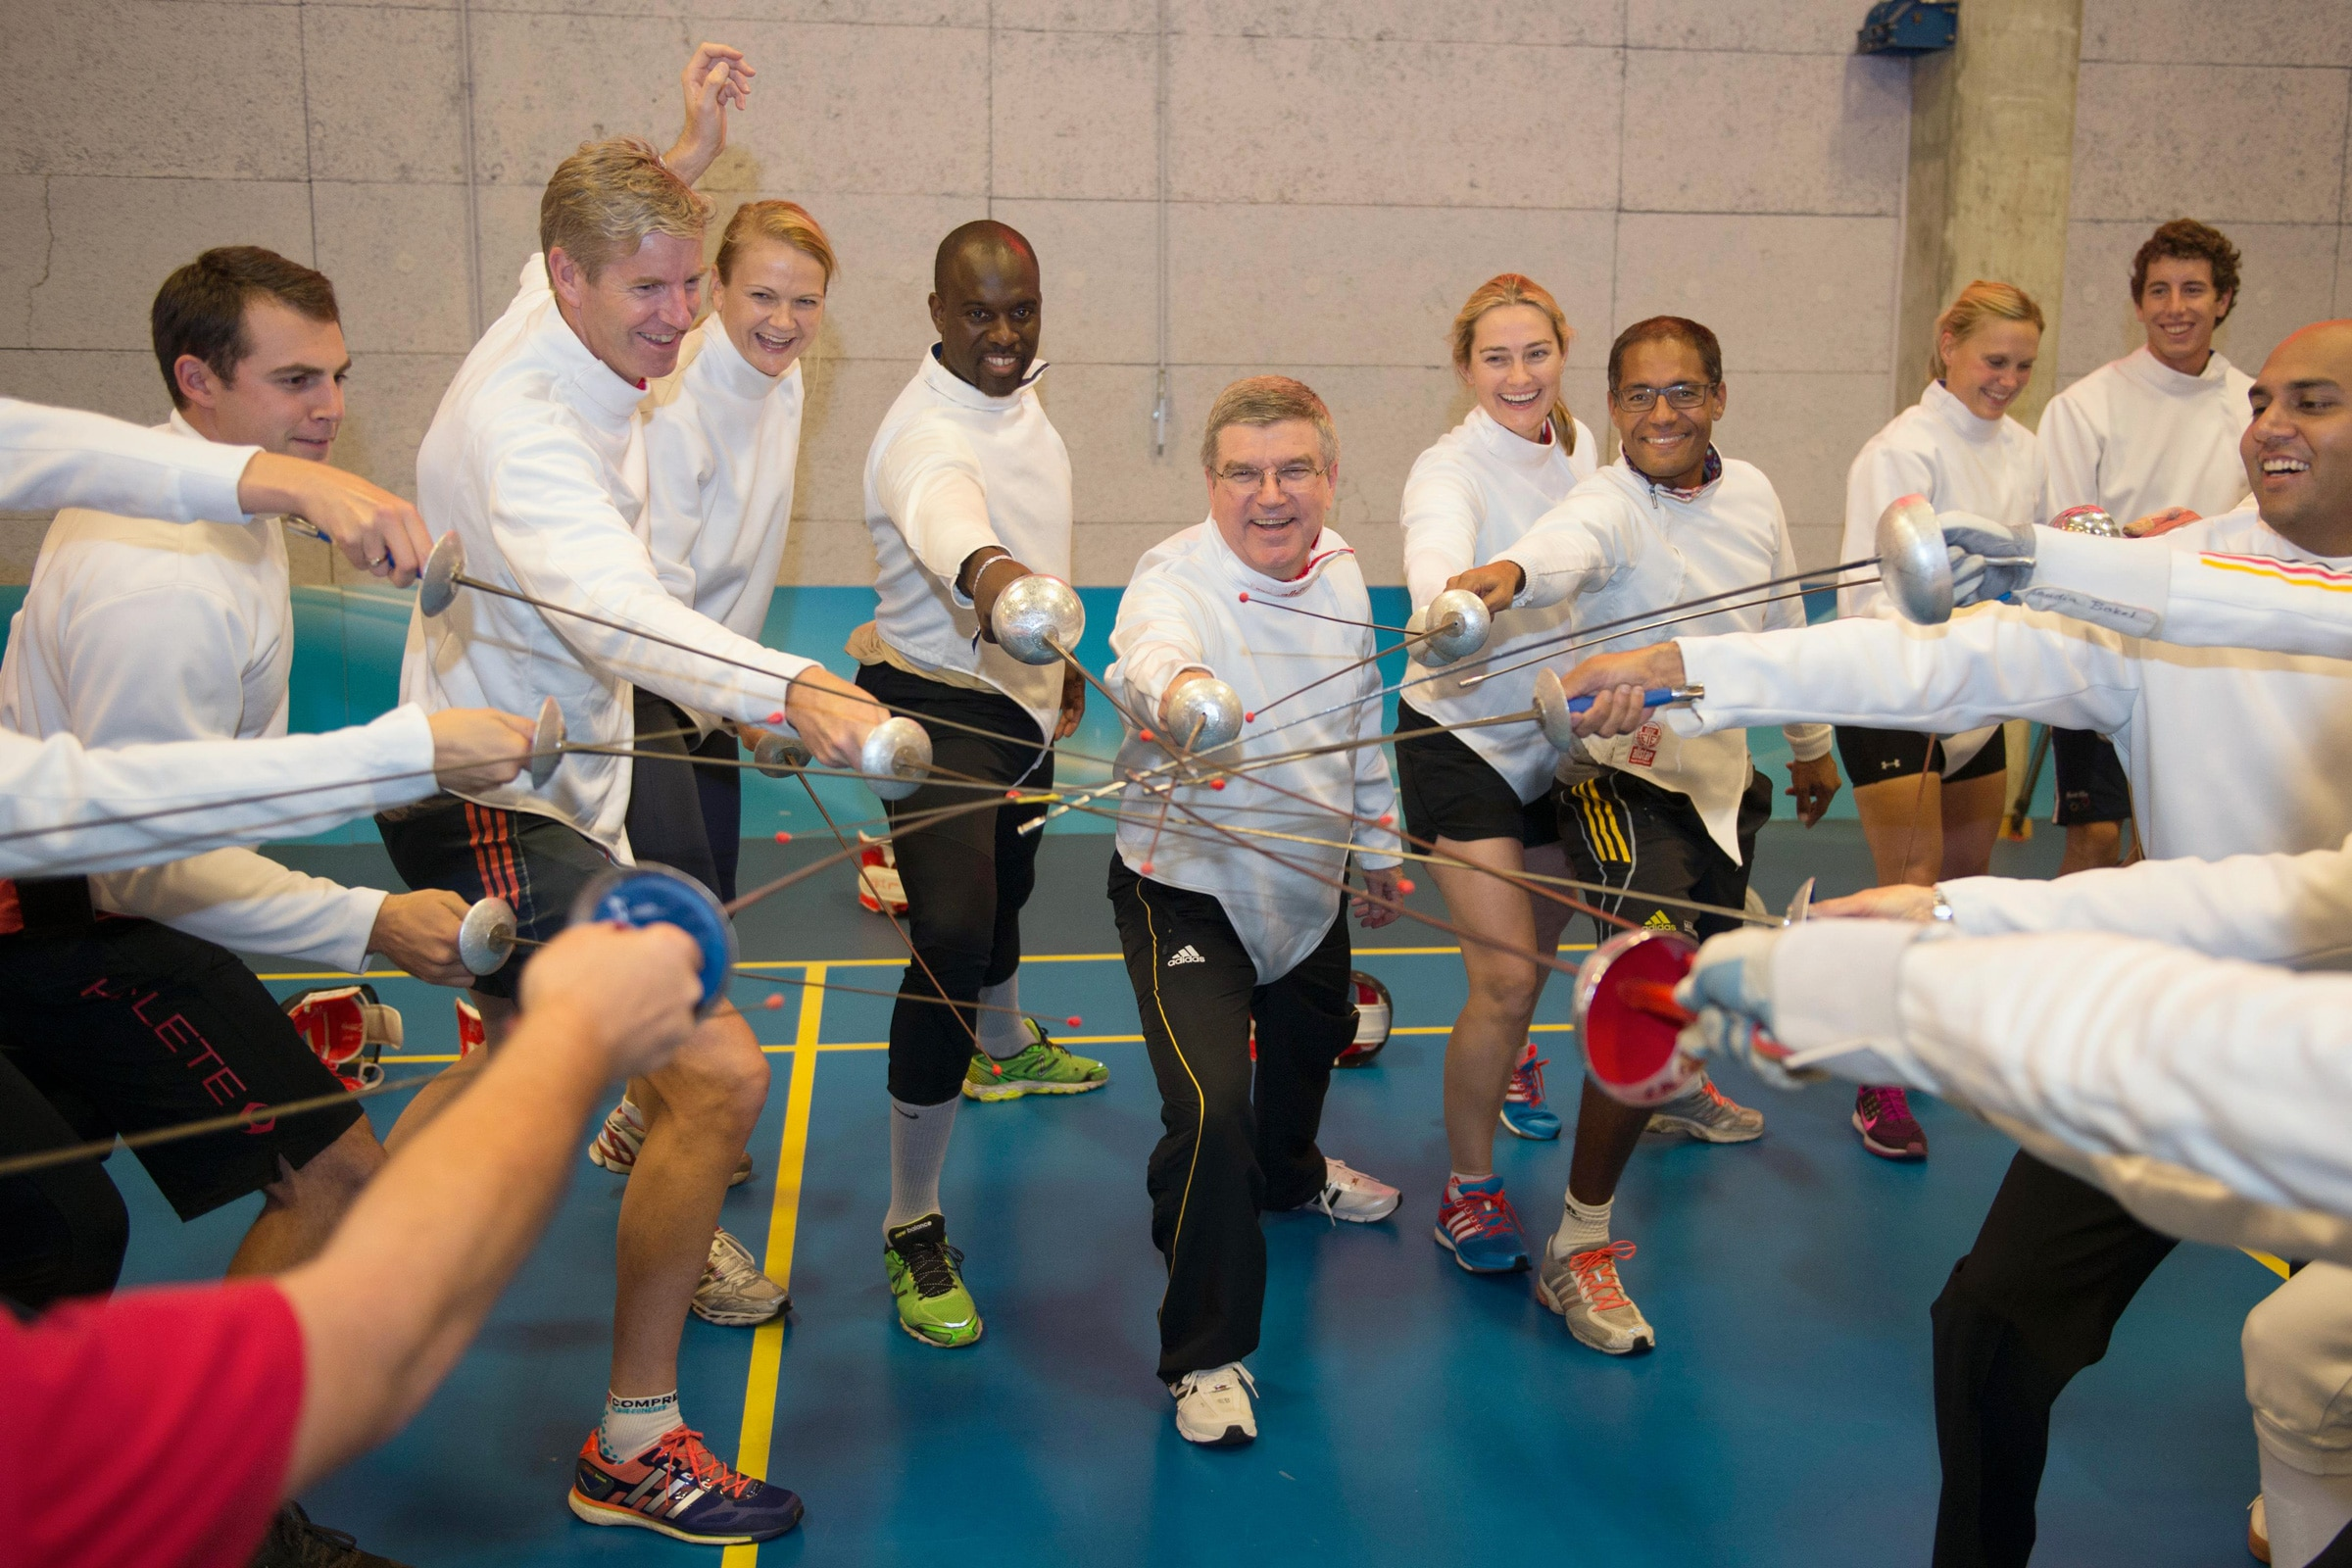 Fencing - Thomas Bach